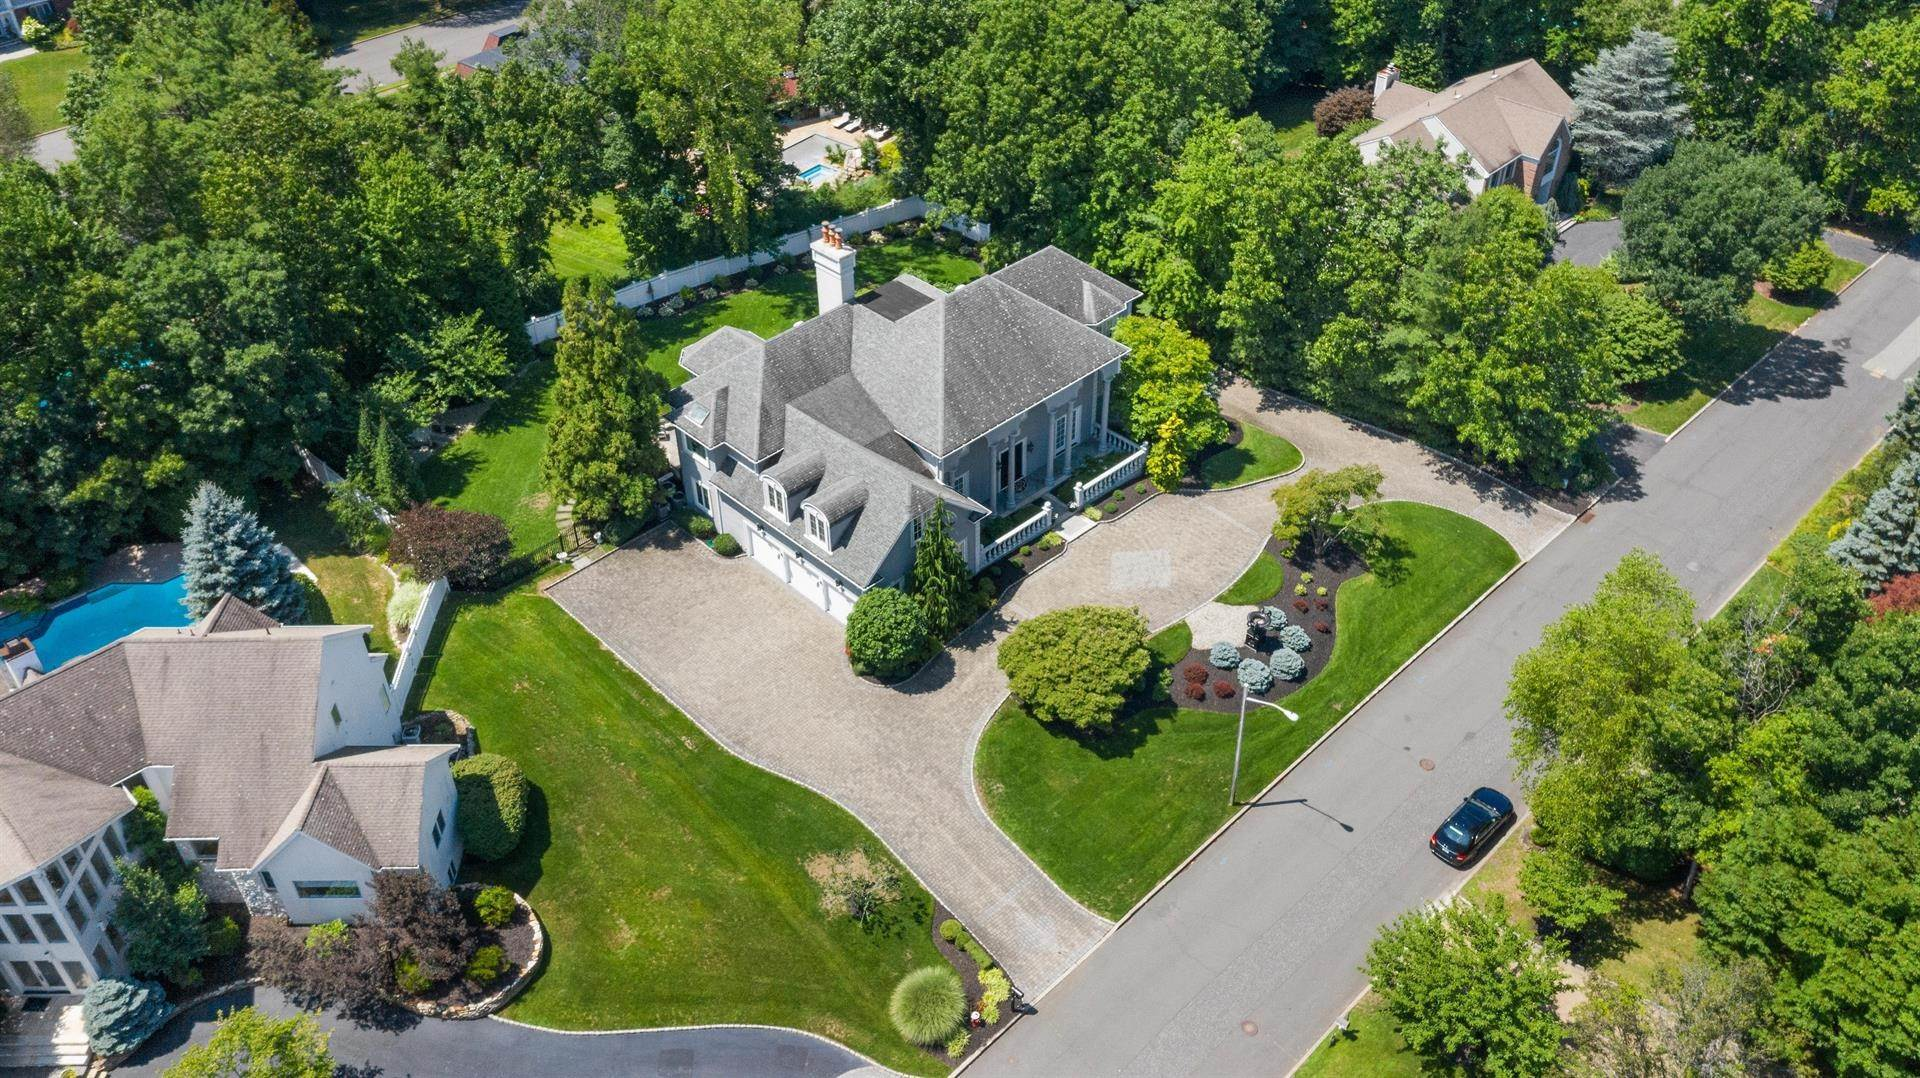 3. Residential for Sale at 15 Hunter Ridge Woodcliff Lake, New Jersey, 07677 United States